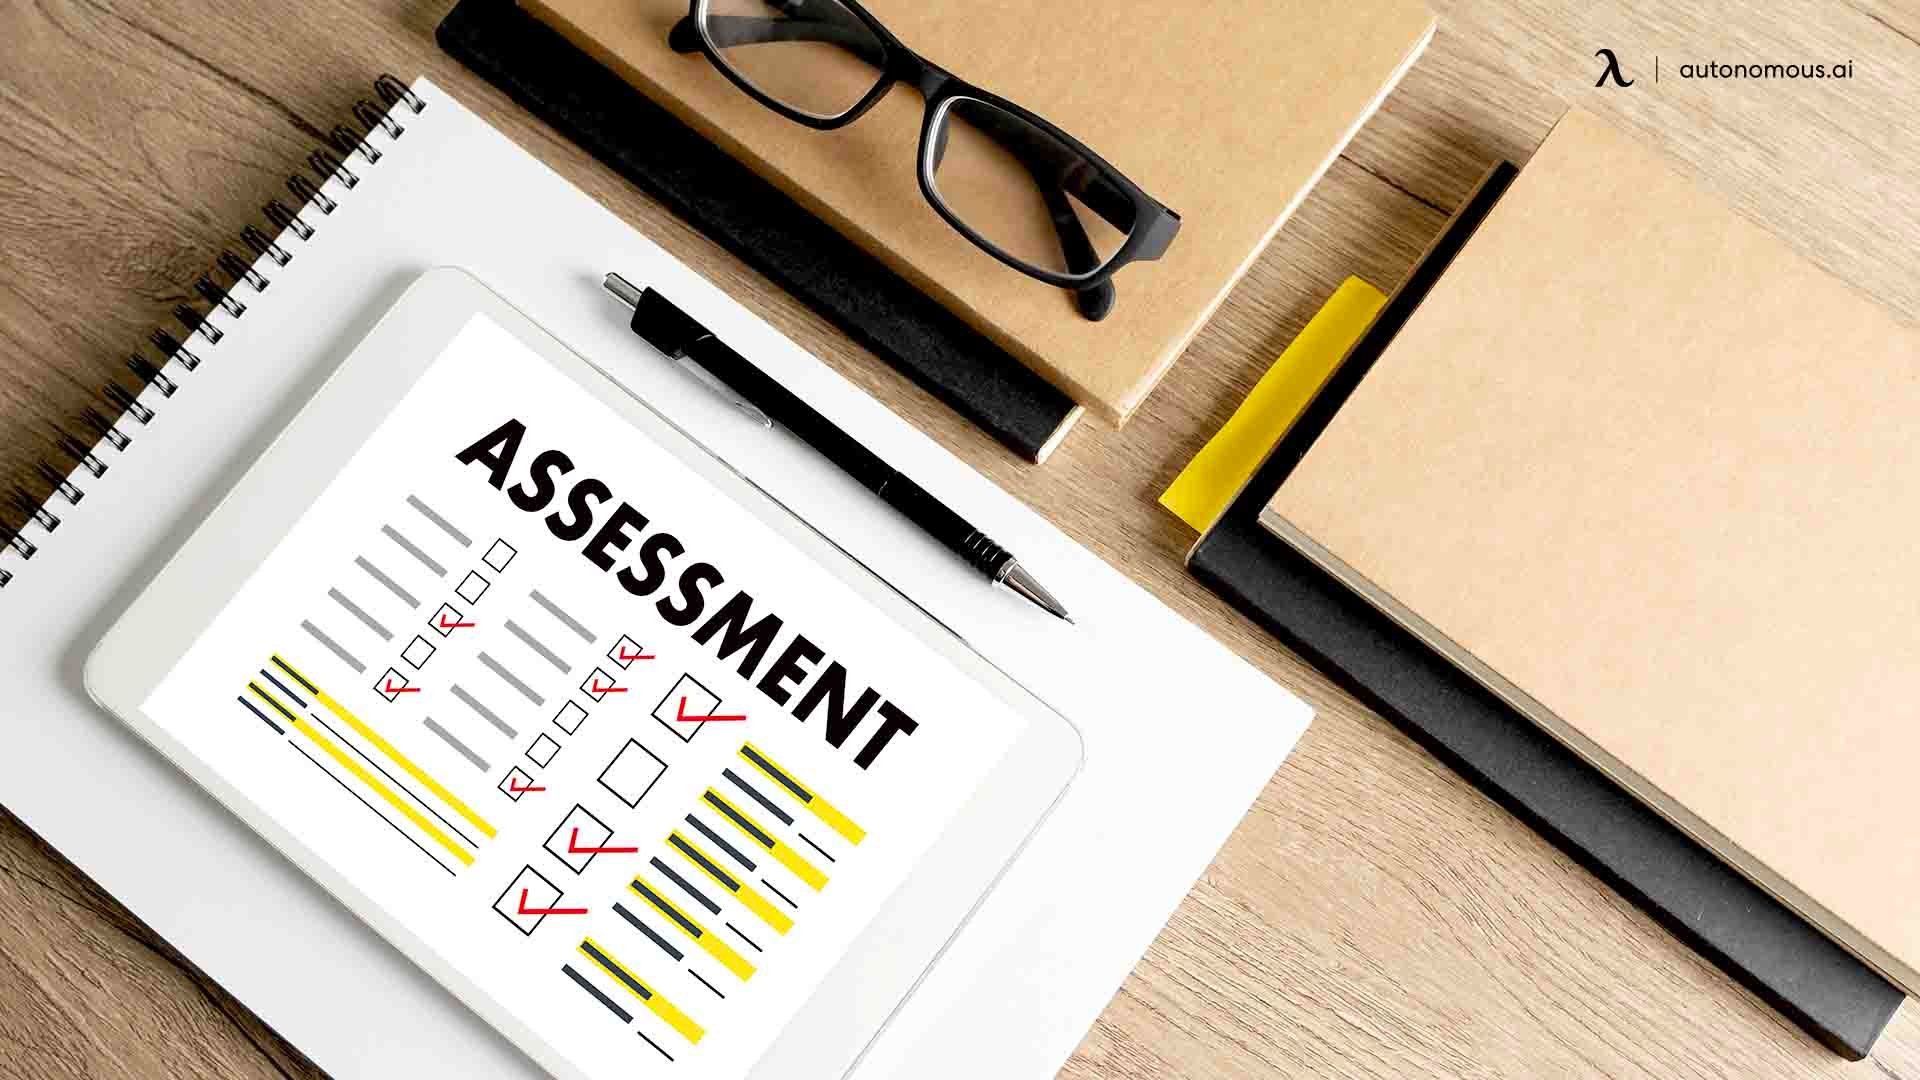 Parameters of employee performance assessment